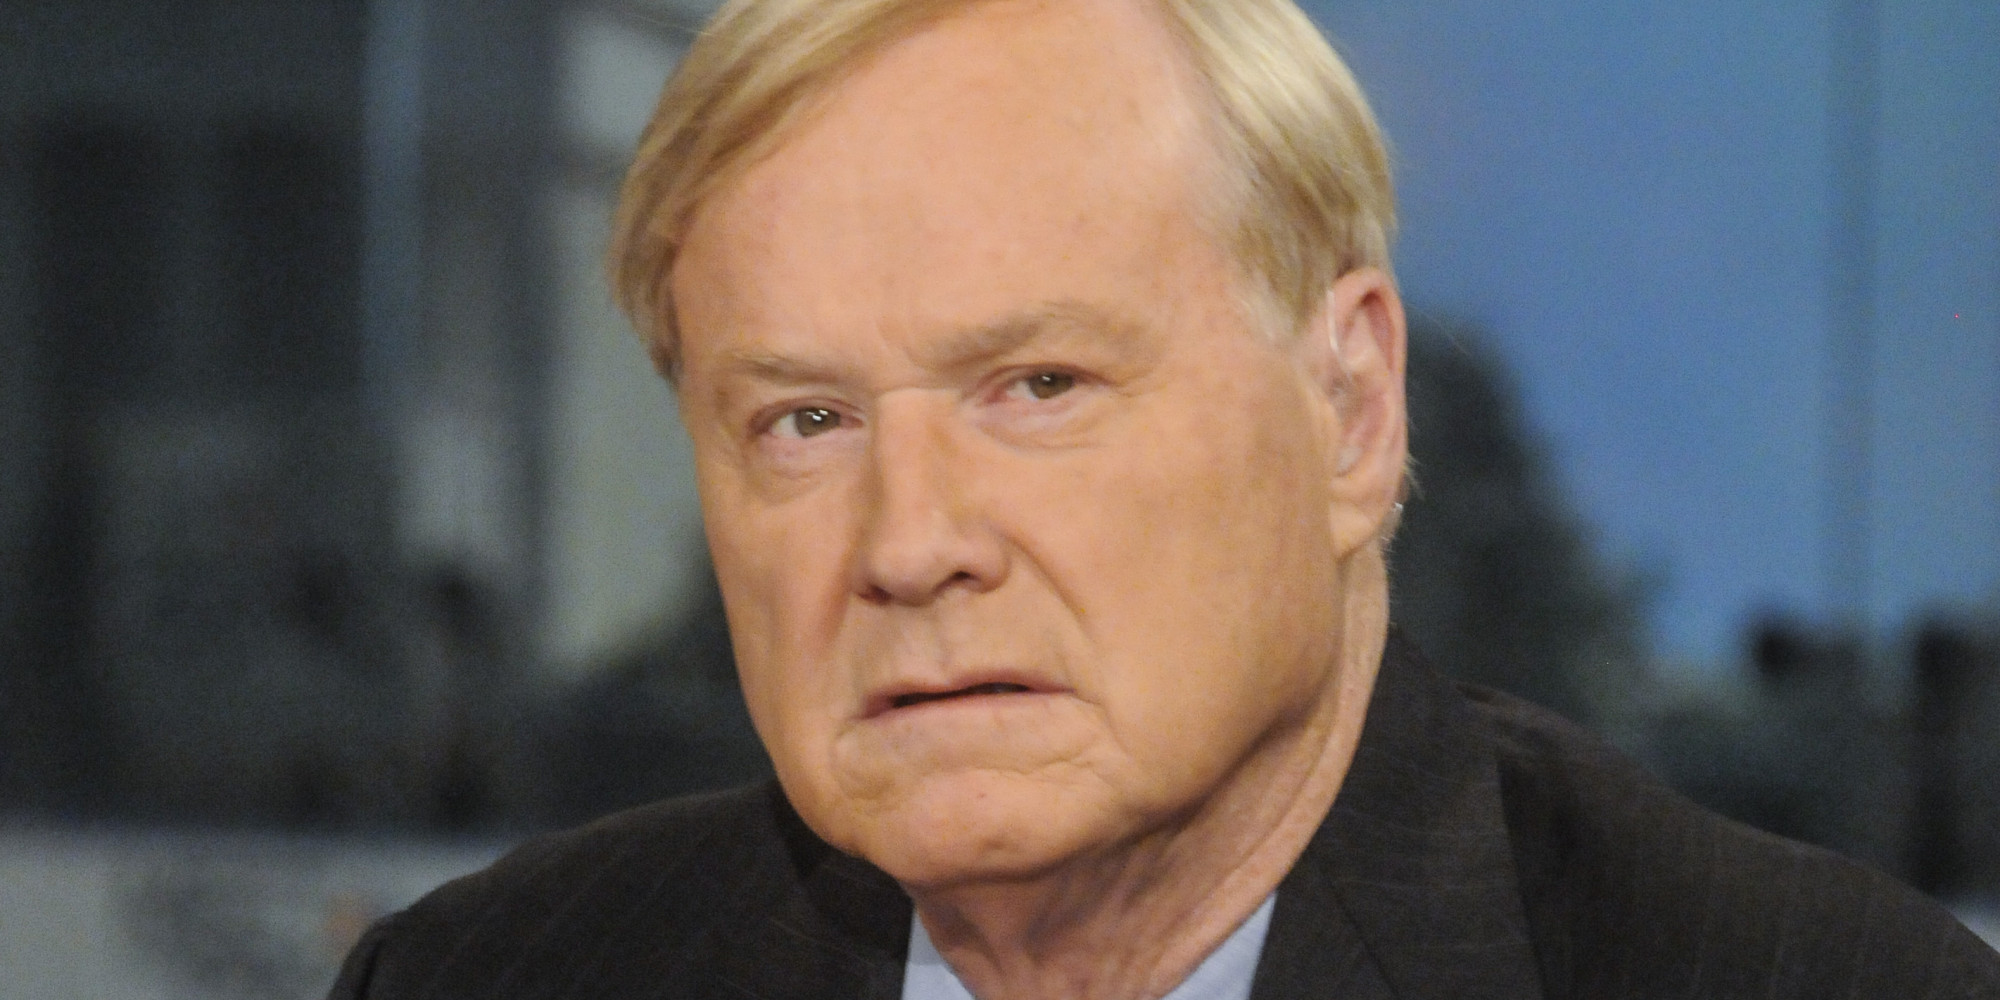 book report chris matthews hardball Hardball: how politics is played told by one who knows the game was chris matthews's first book, which led to the creation of the show references.